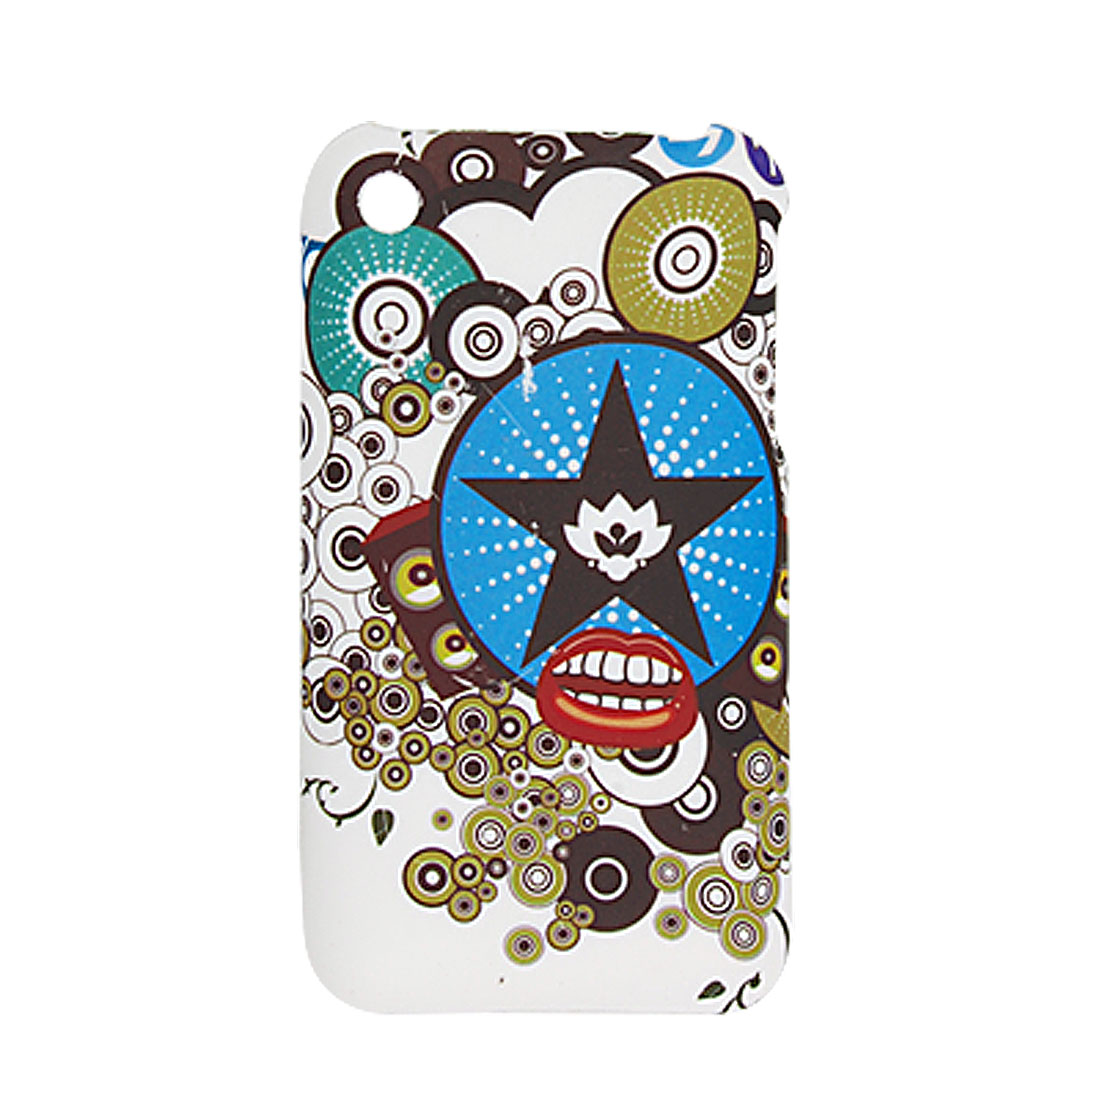 Cartoon Decor Rubberized Hard Plastic Case for Apple iPhone 3G